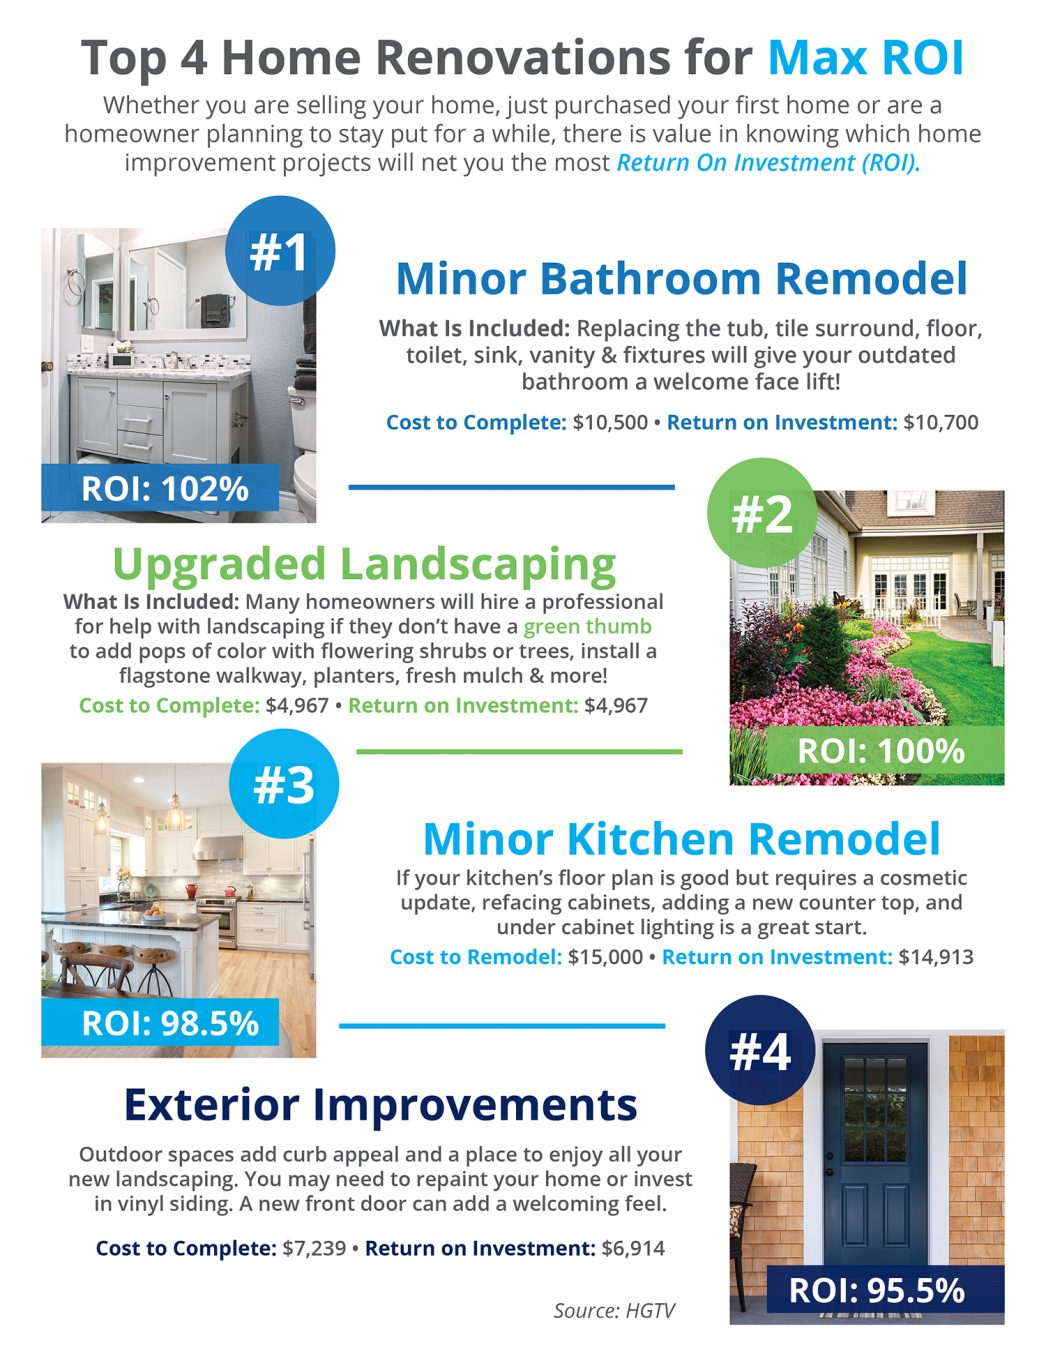 Top Home Renovations